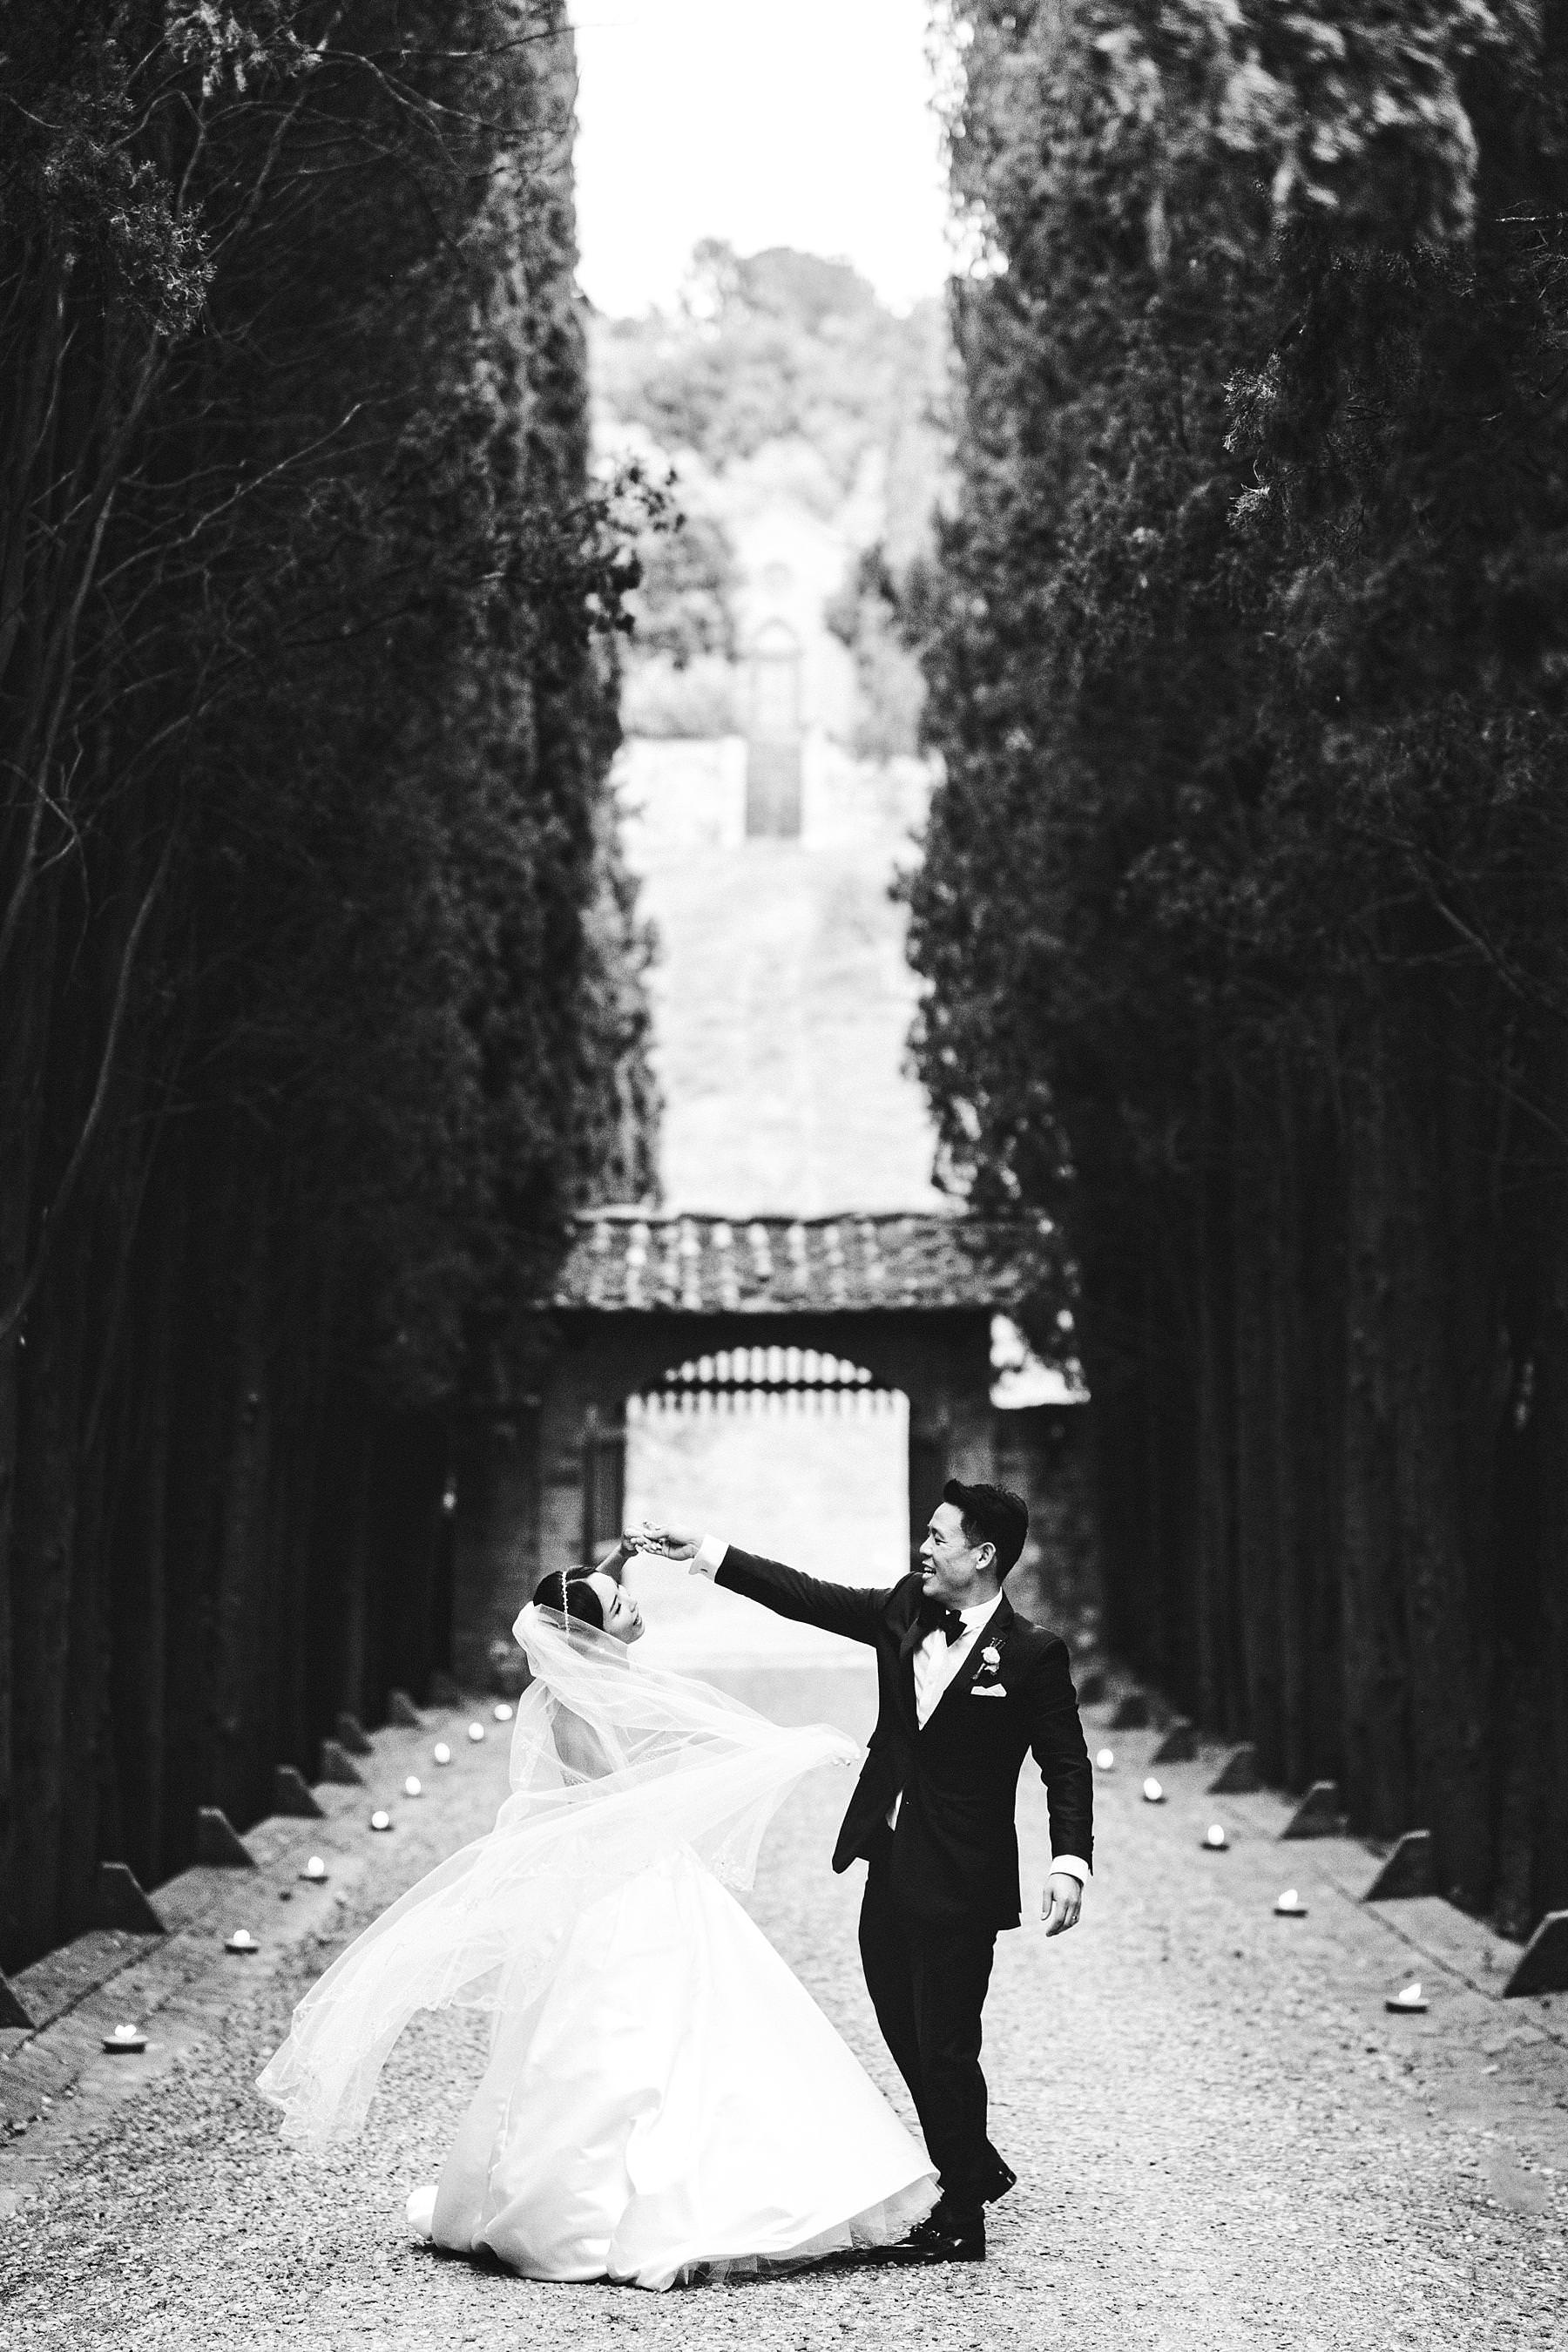 Lovely bride and groom wedding photo at Castello Il Palagio venue in the countryside of Tuscany near Chianti. Intimate castle wedding in Italy